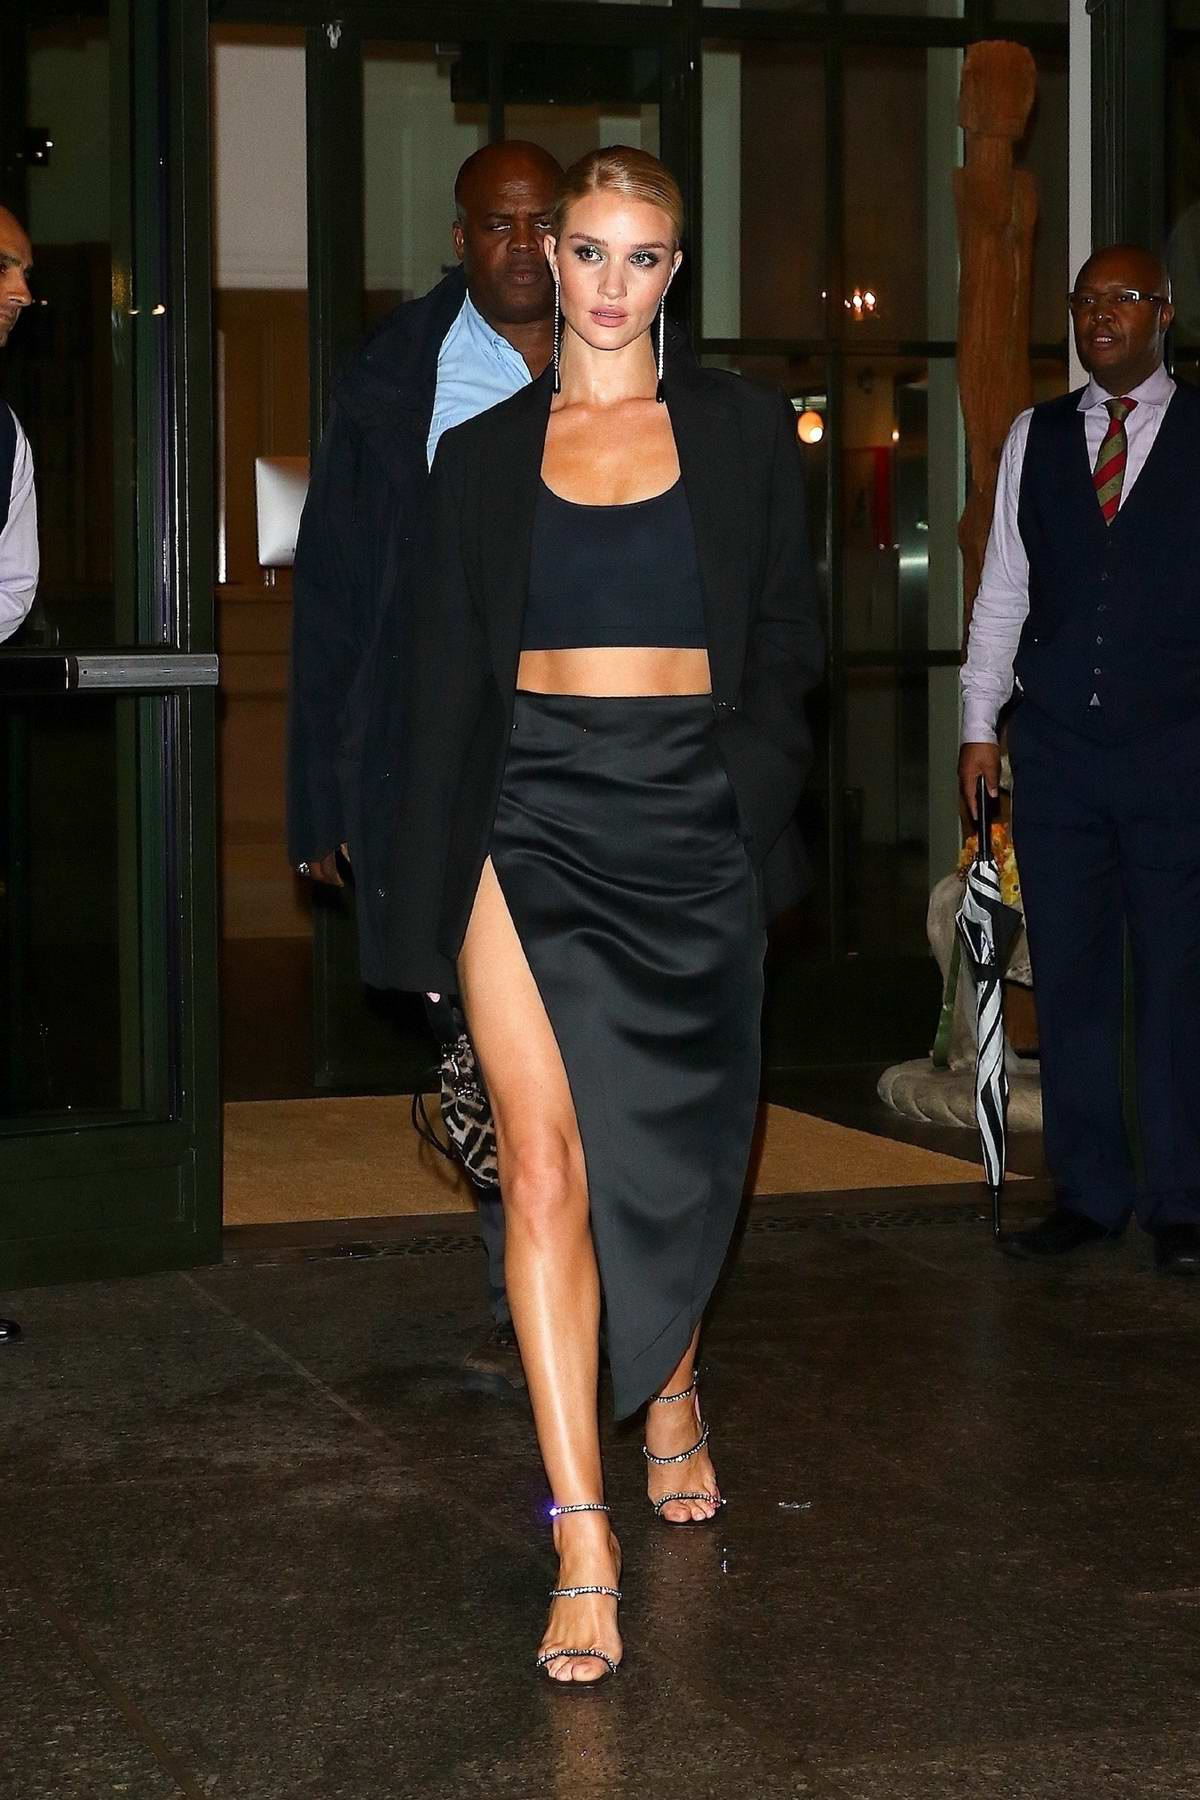 Rosie Huntington-Whiteley steps out for an evening in New York City